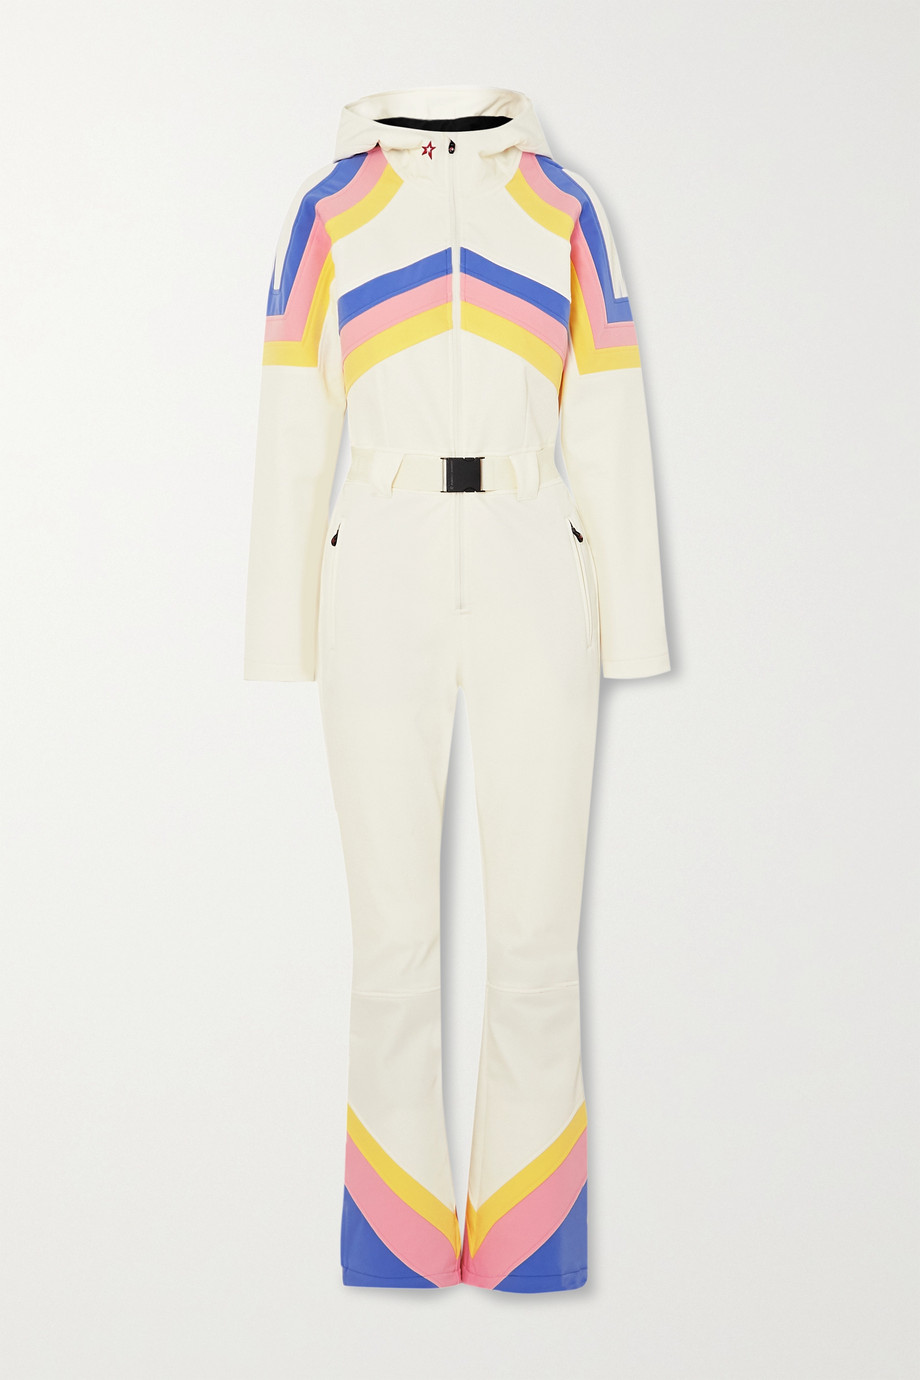 Perfect Moment Tignes hooded belted striped ski suit